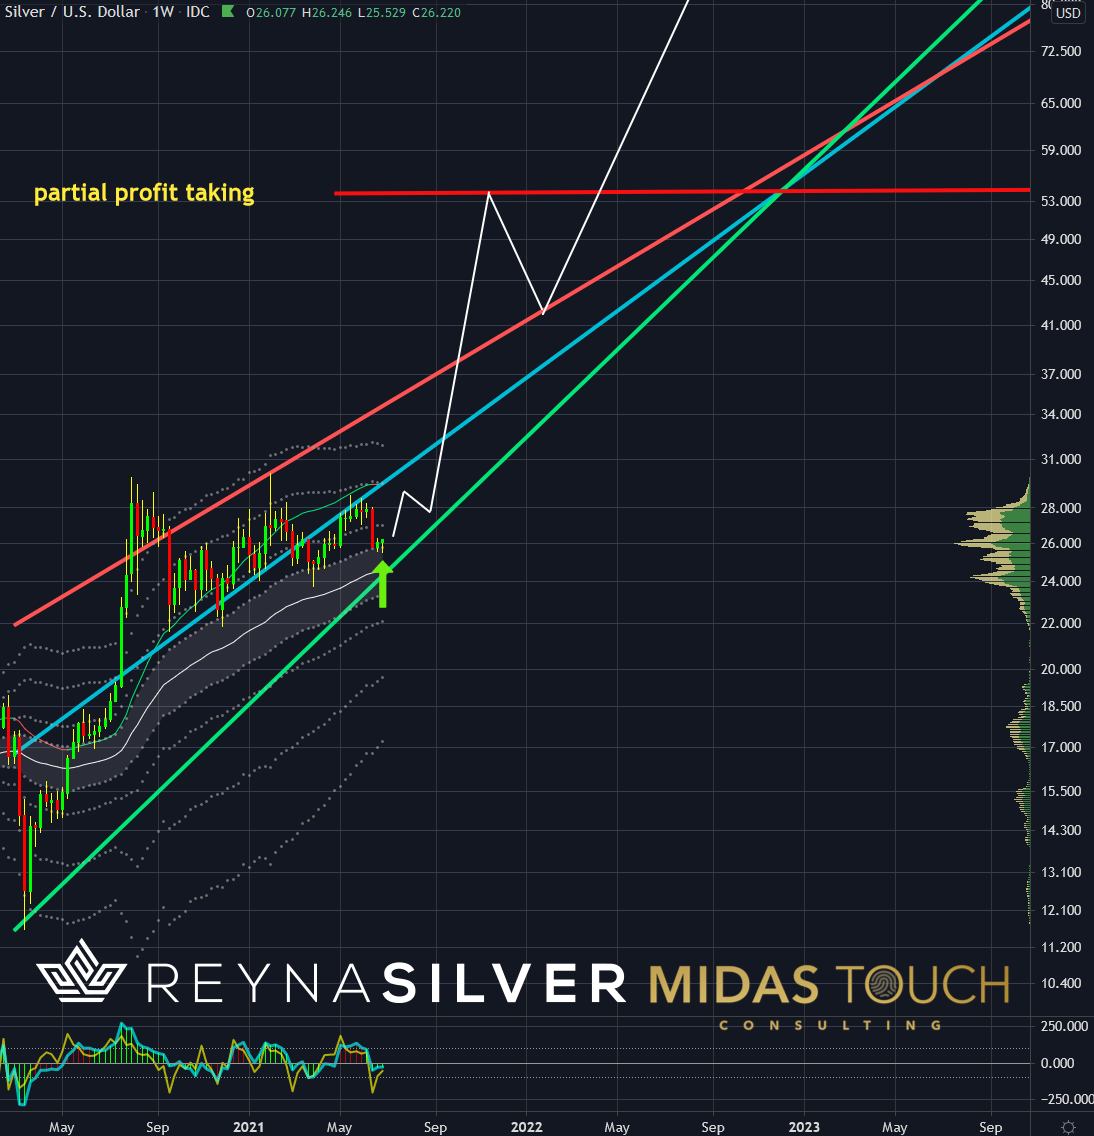 Silver in US-Dollar, monthly chart as of July 1st, 2021.b